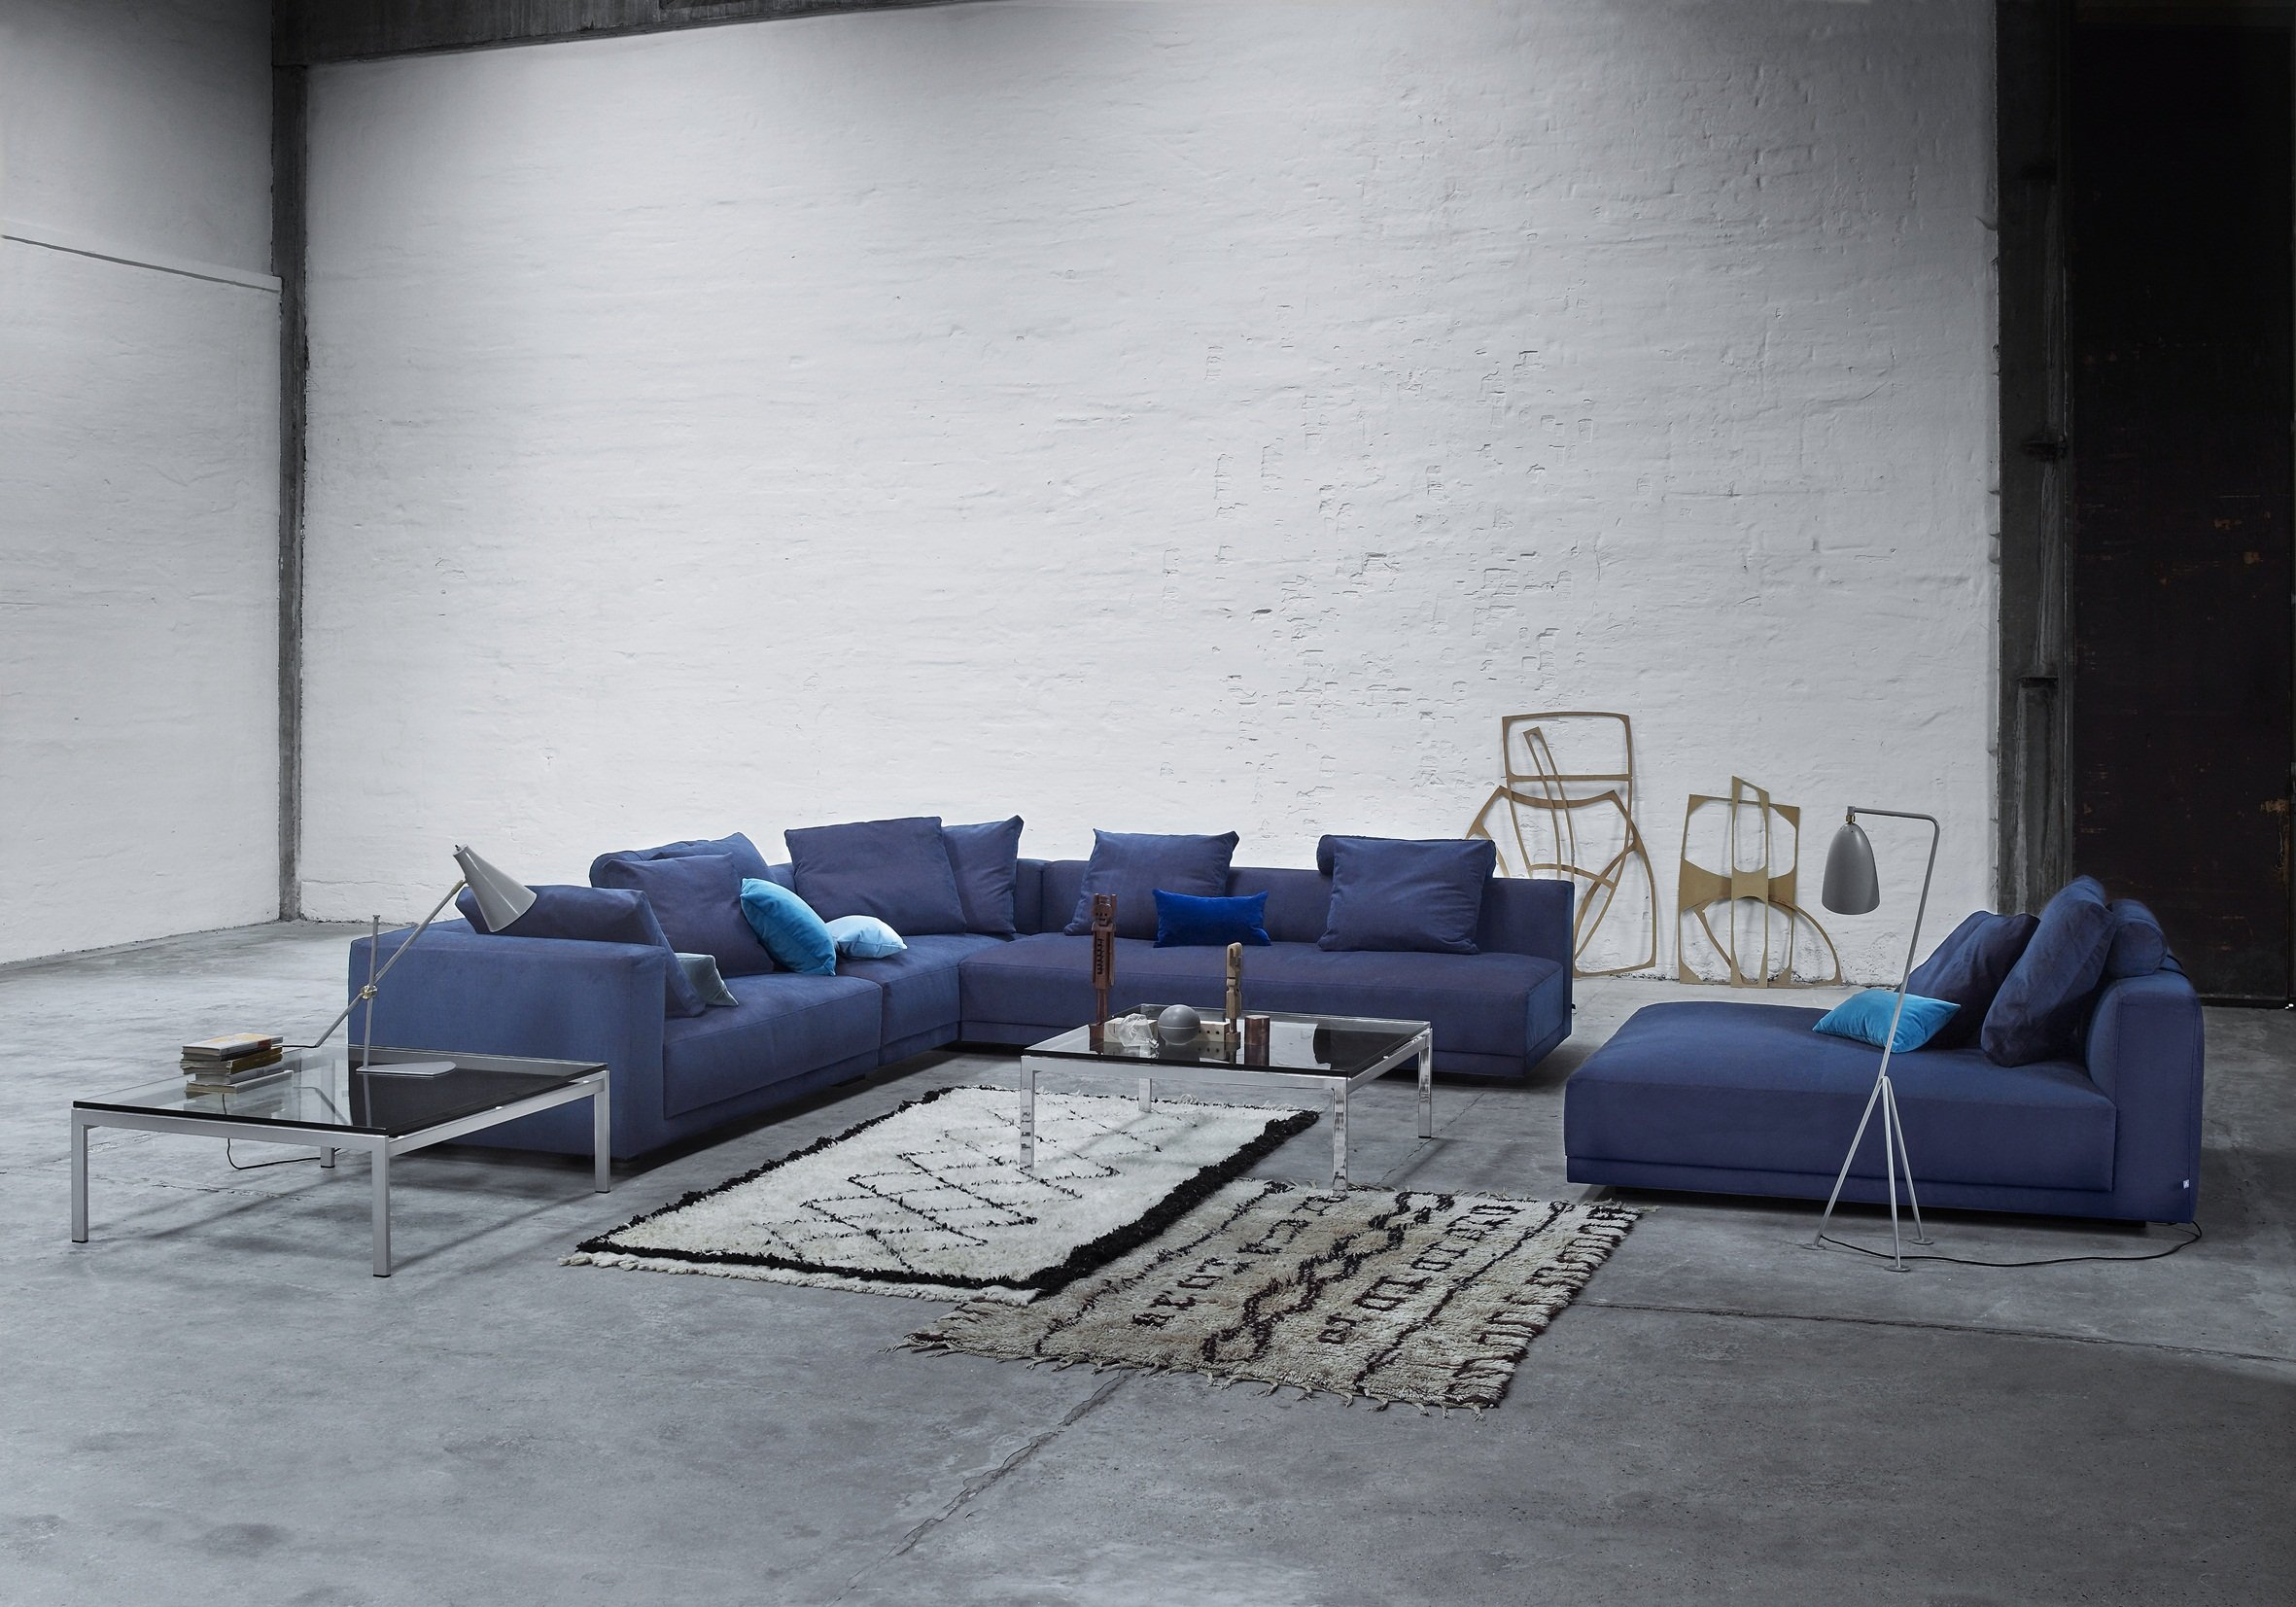 eilersen sofa baseline m chaiselong canada bed sofas and modern furniture san francisco ca